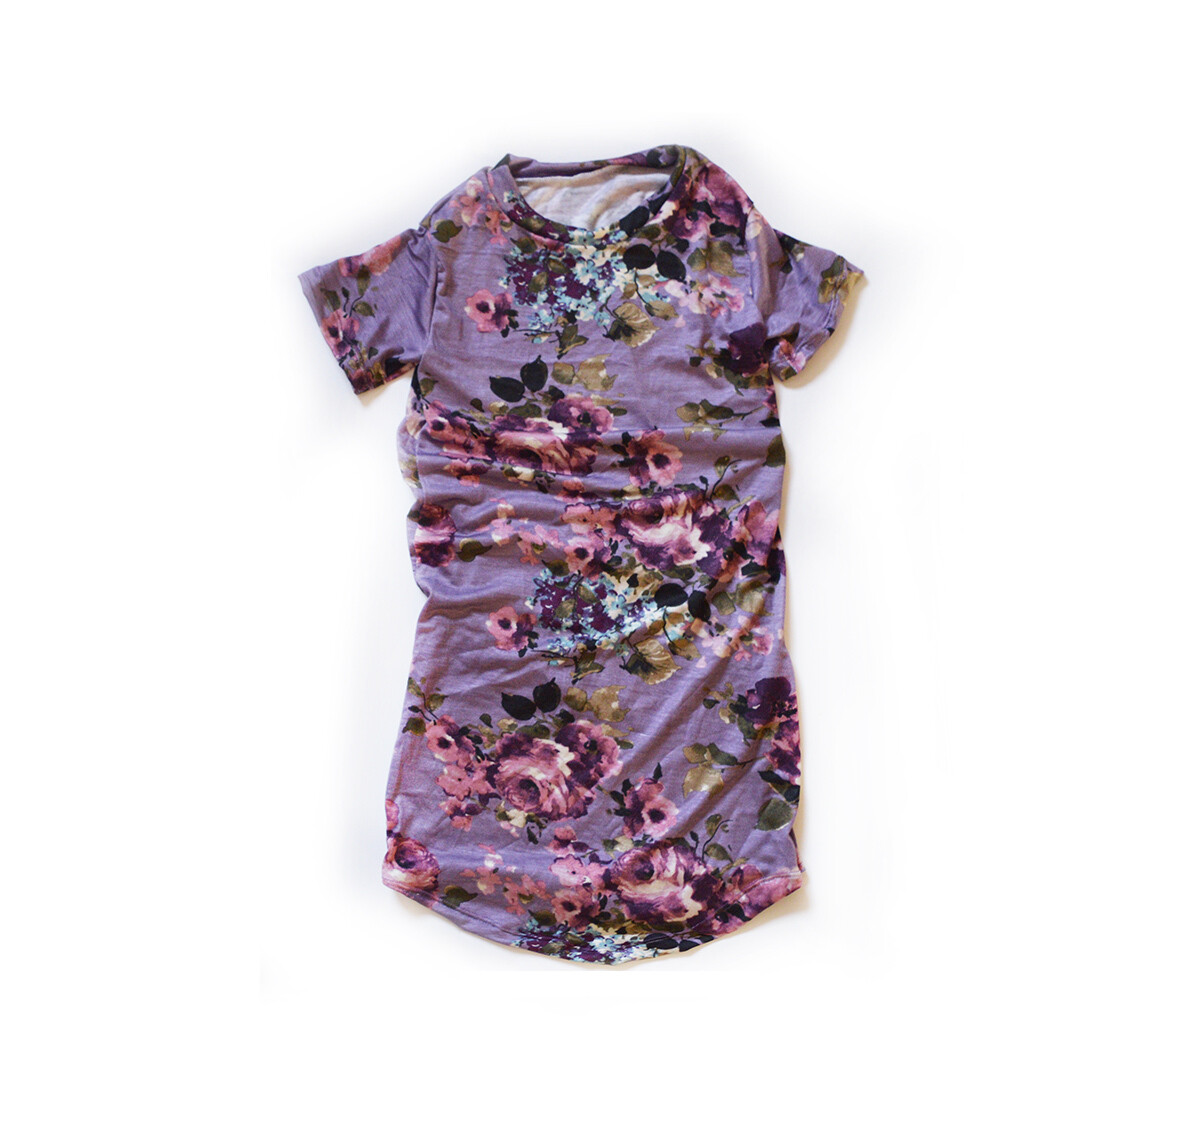 Little Sprout™ Cotton T-Shirt Dress in Mauve Floral | NEW Fall 2019